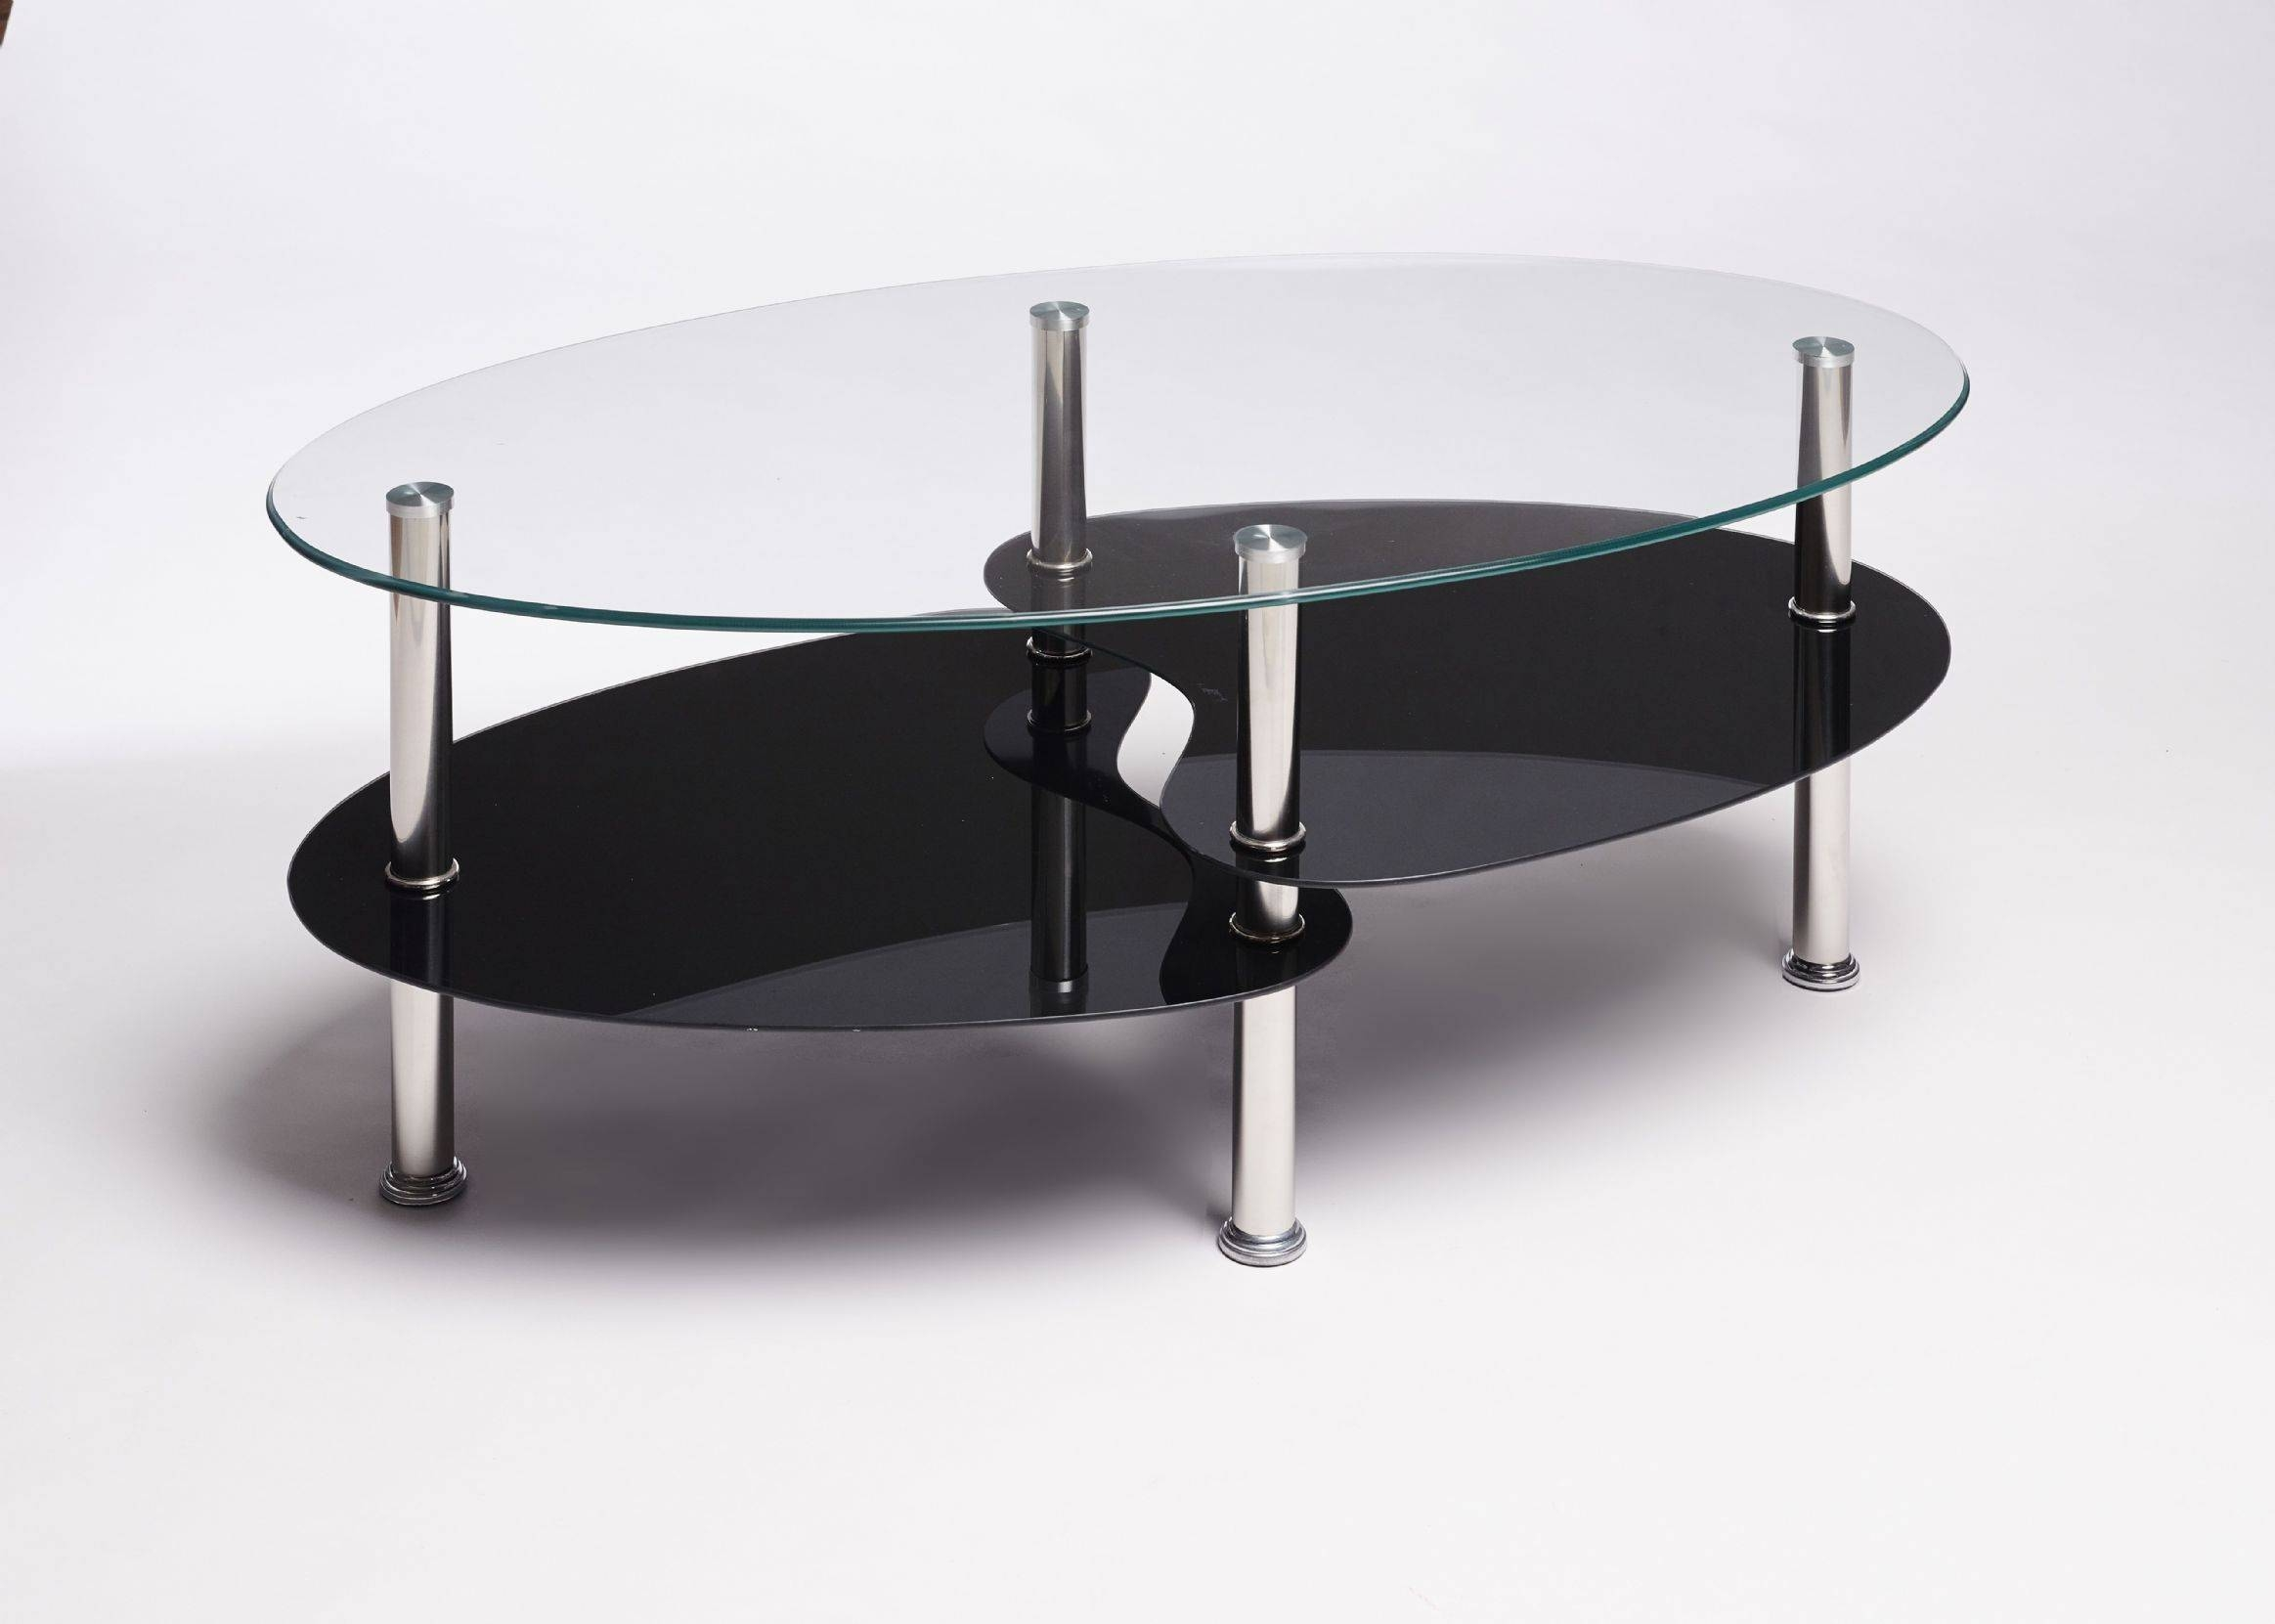 Furniture: Oval Glass Top Coffee Table | Oval Coffee Table Glass pertaining to Oval Glass Coffee Tables (Image 13 of 30)